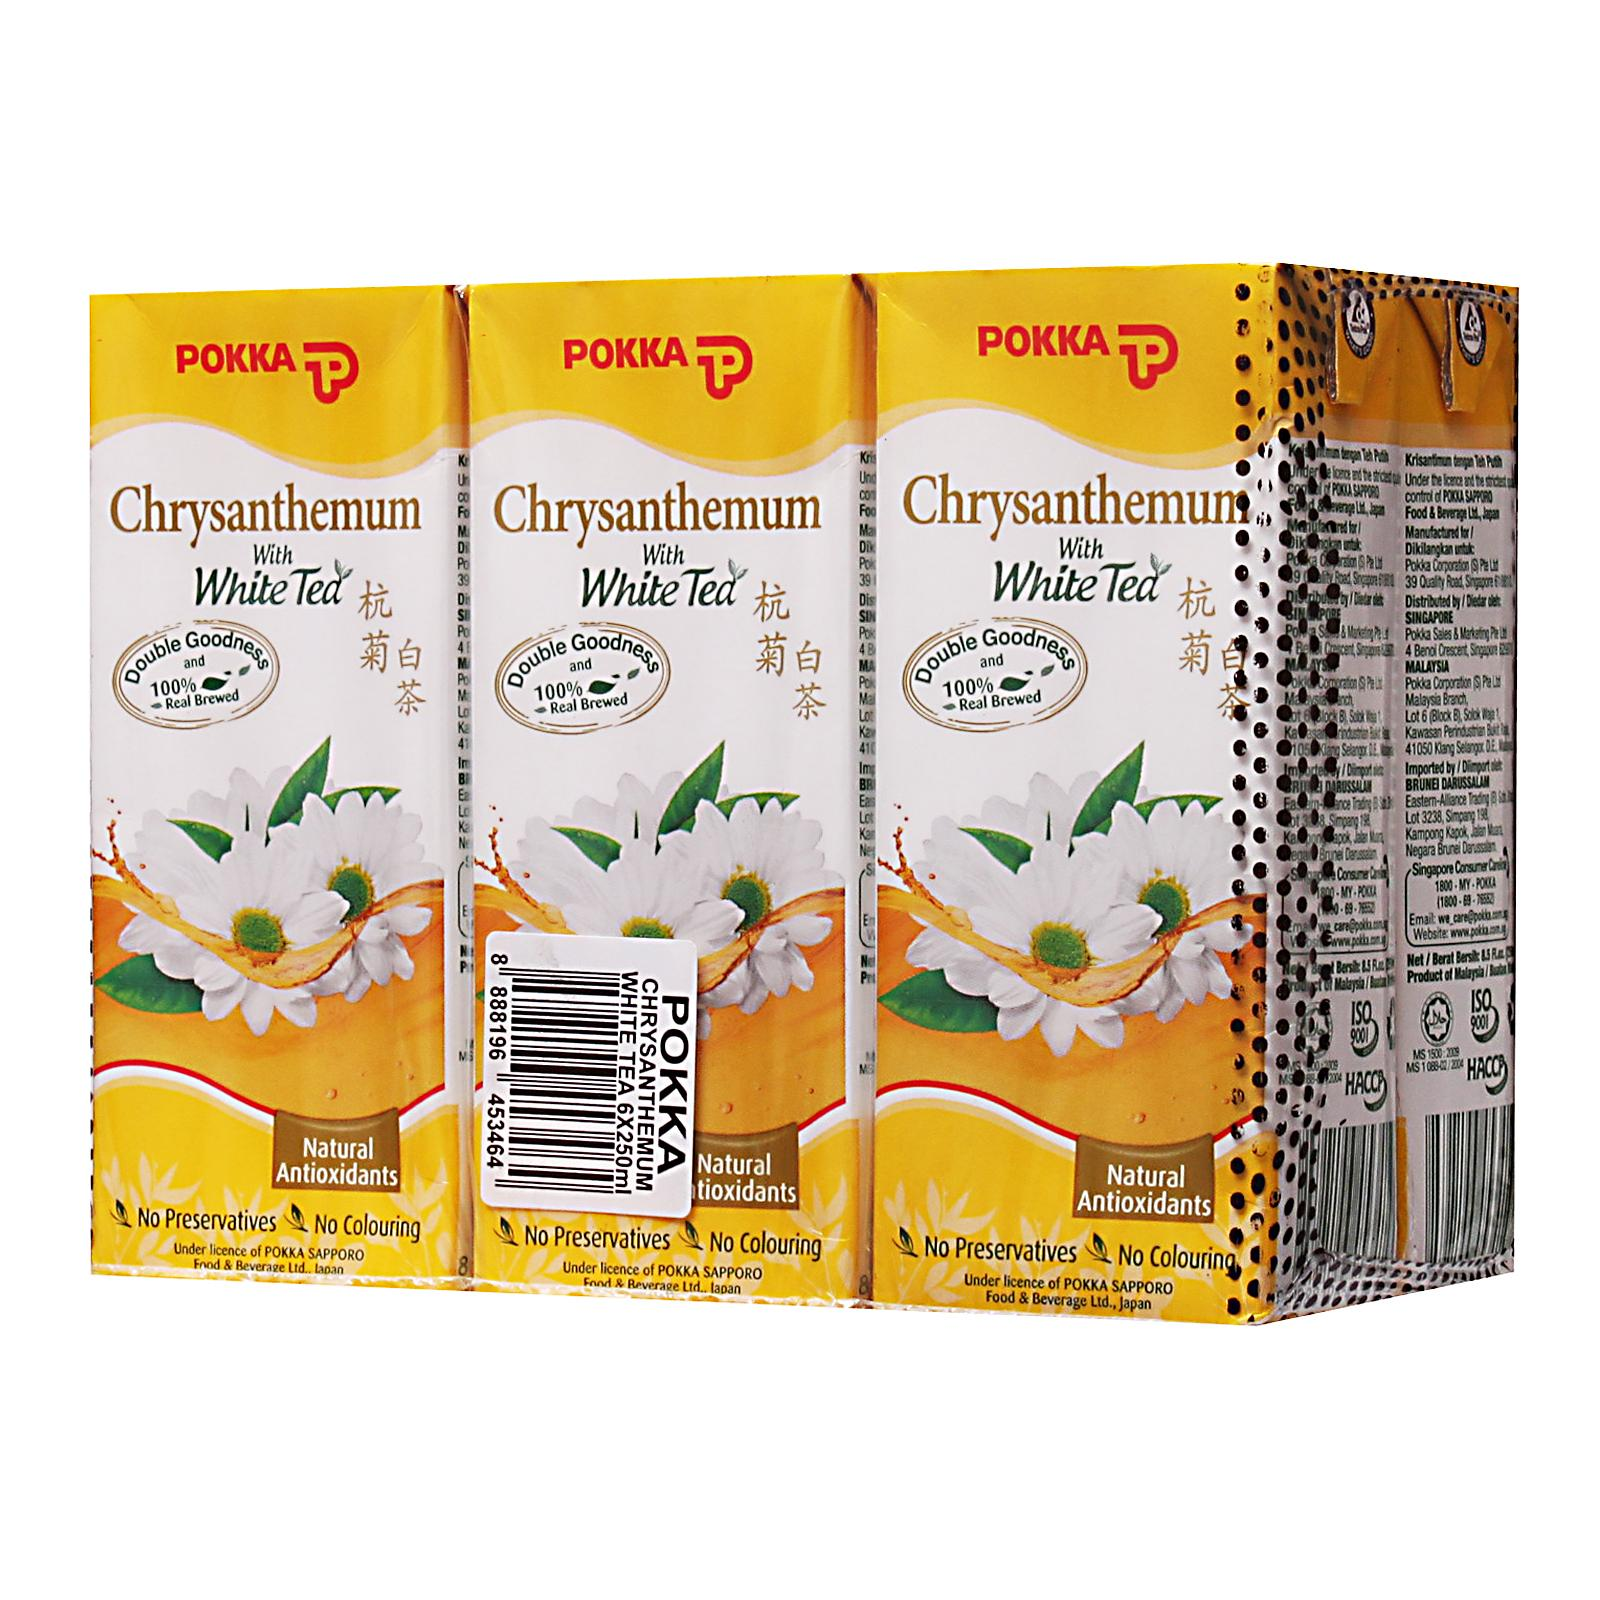 POKKA Chrysanthemum White Tea 6sX250ml